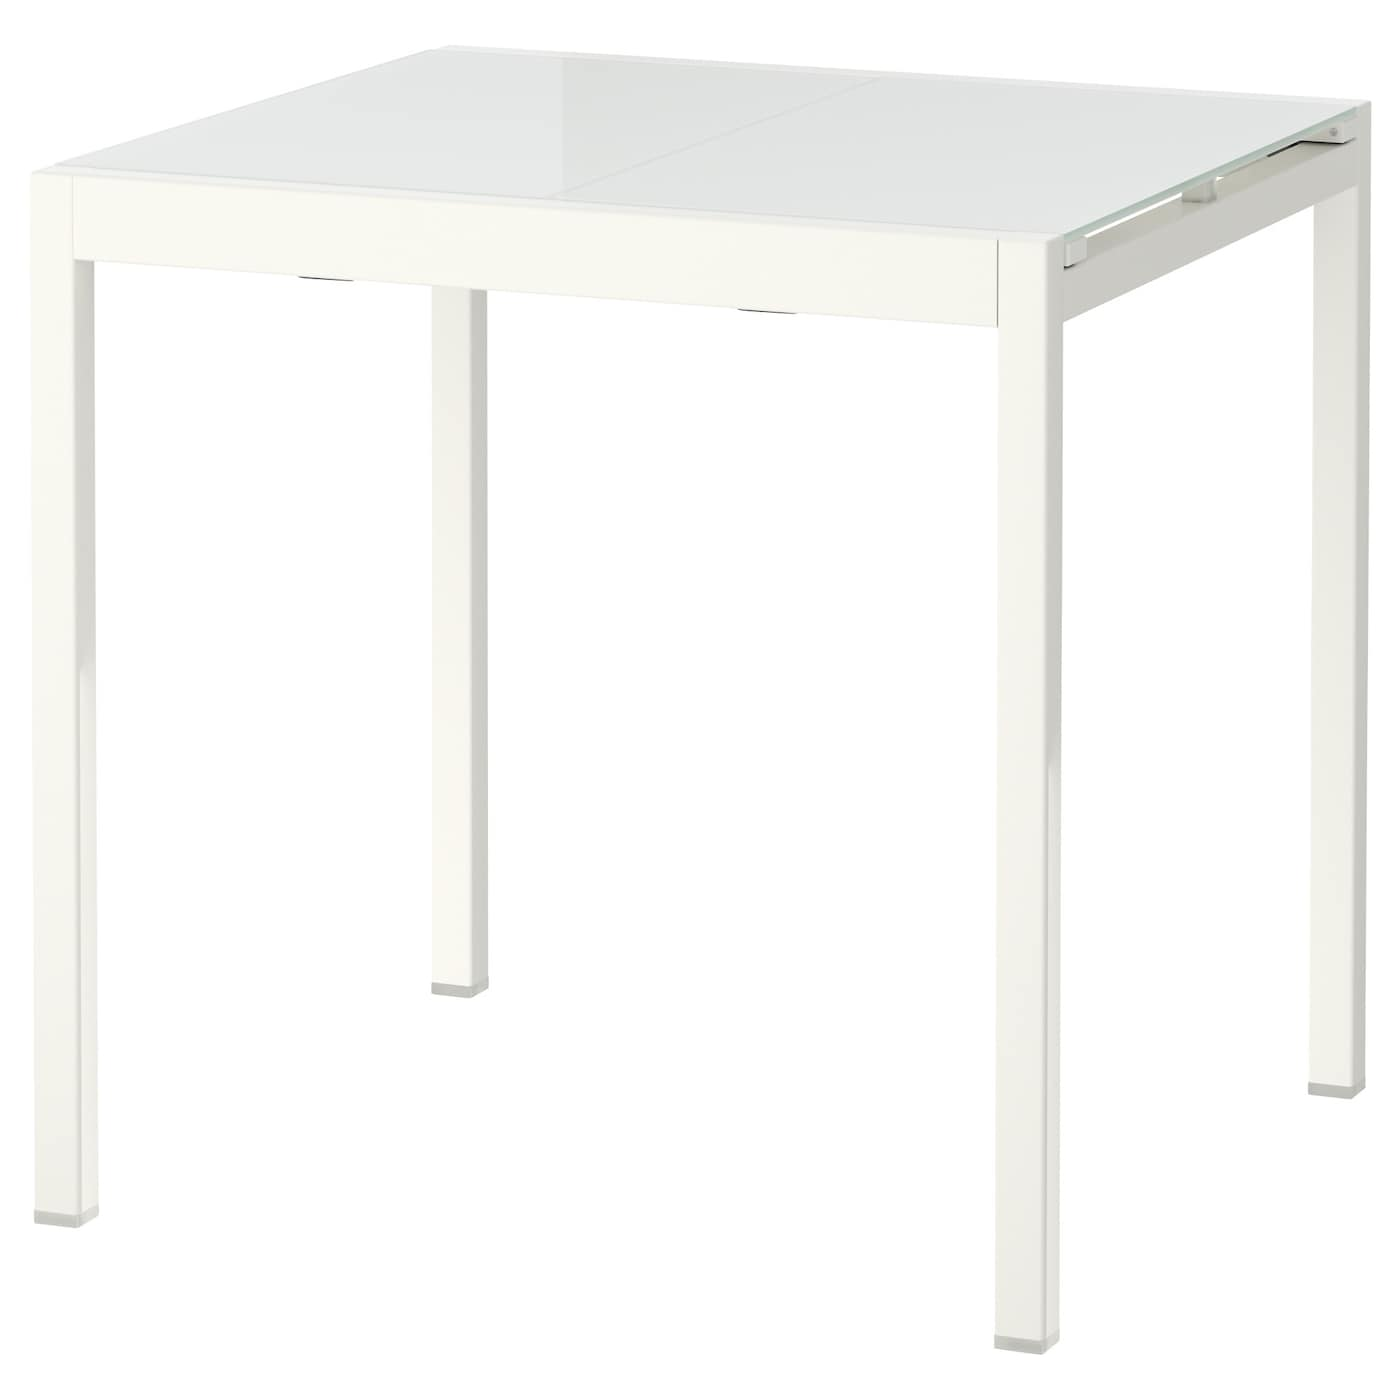 glivarp extendable table white 75 115x70 cm ikea. Black Bedroom Furniture Sets. Home Design Ideas